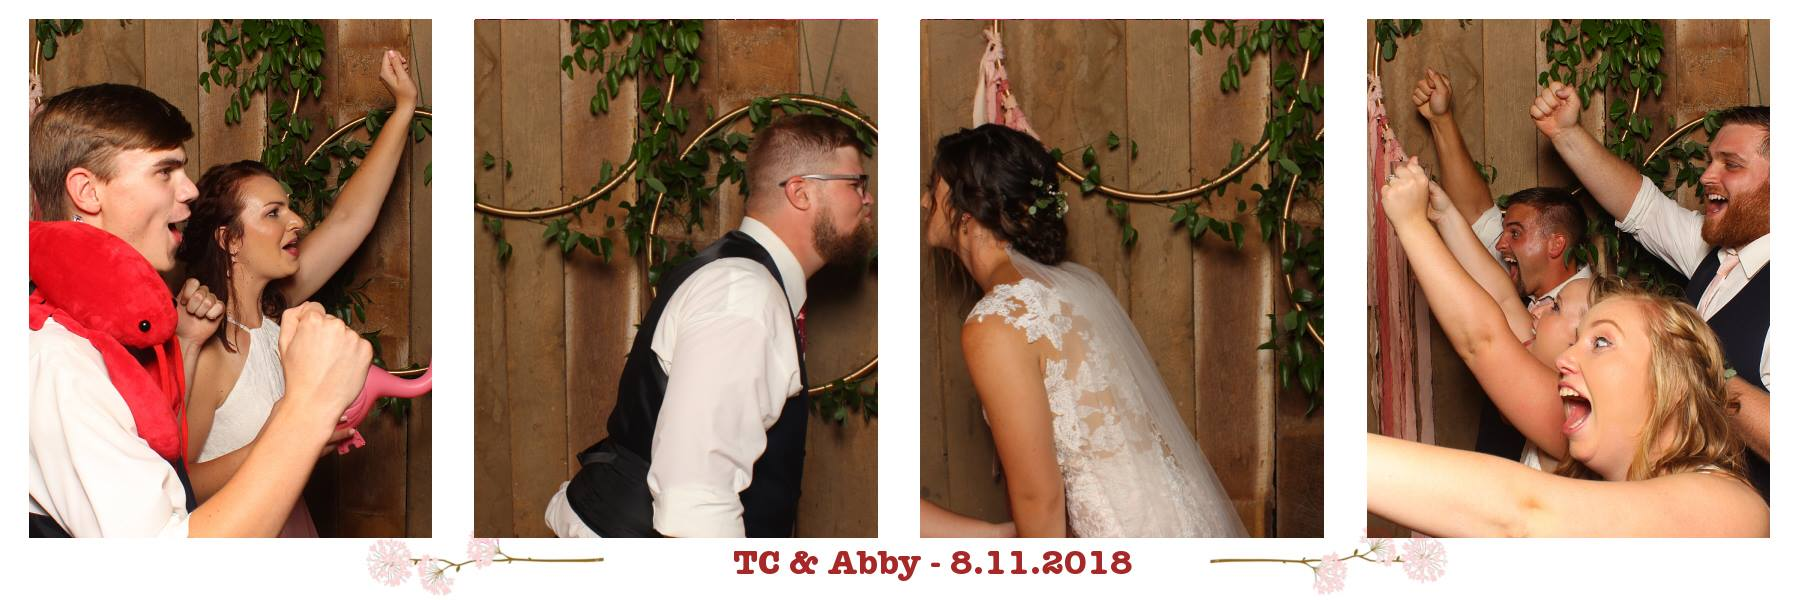 red august barn waynesboro wedding photo booth - boxy booth photo booth company weddings events staunton charlottesville harrisonburg lexington crozet